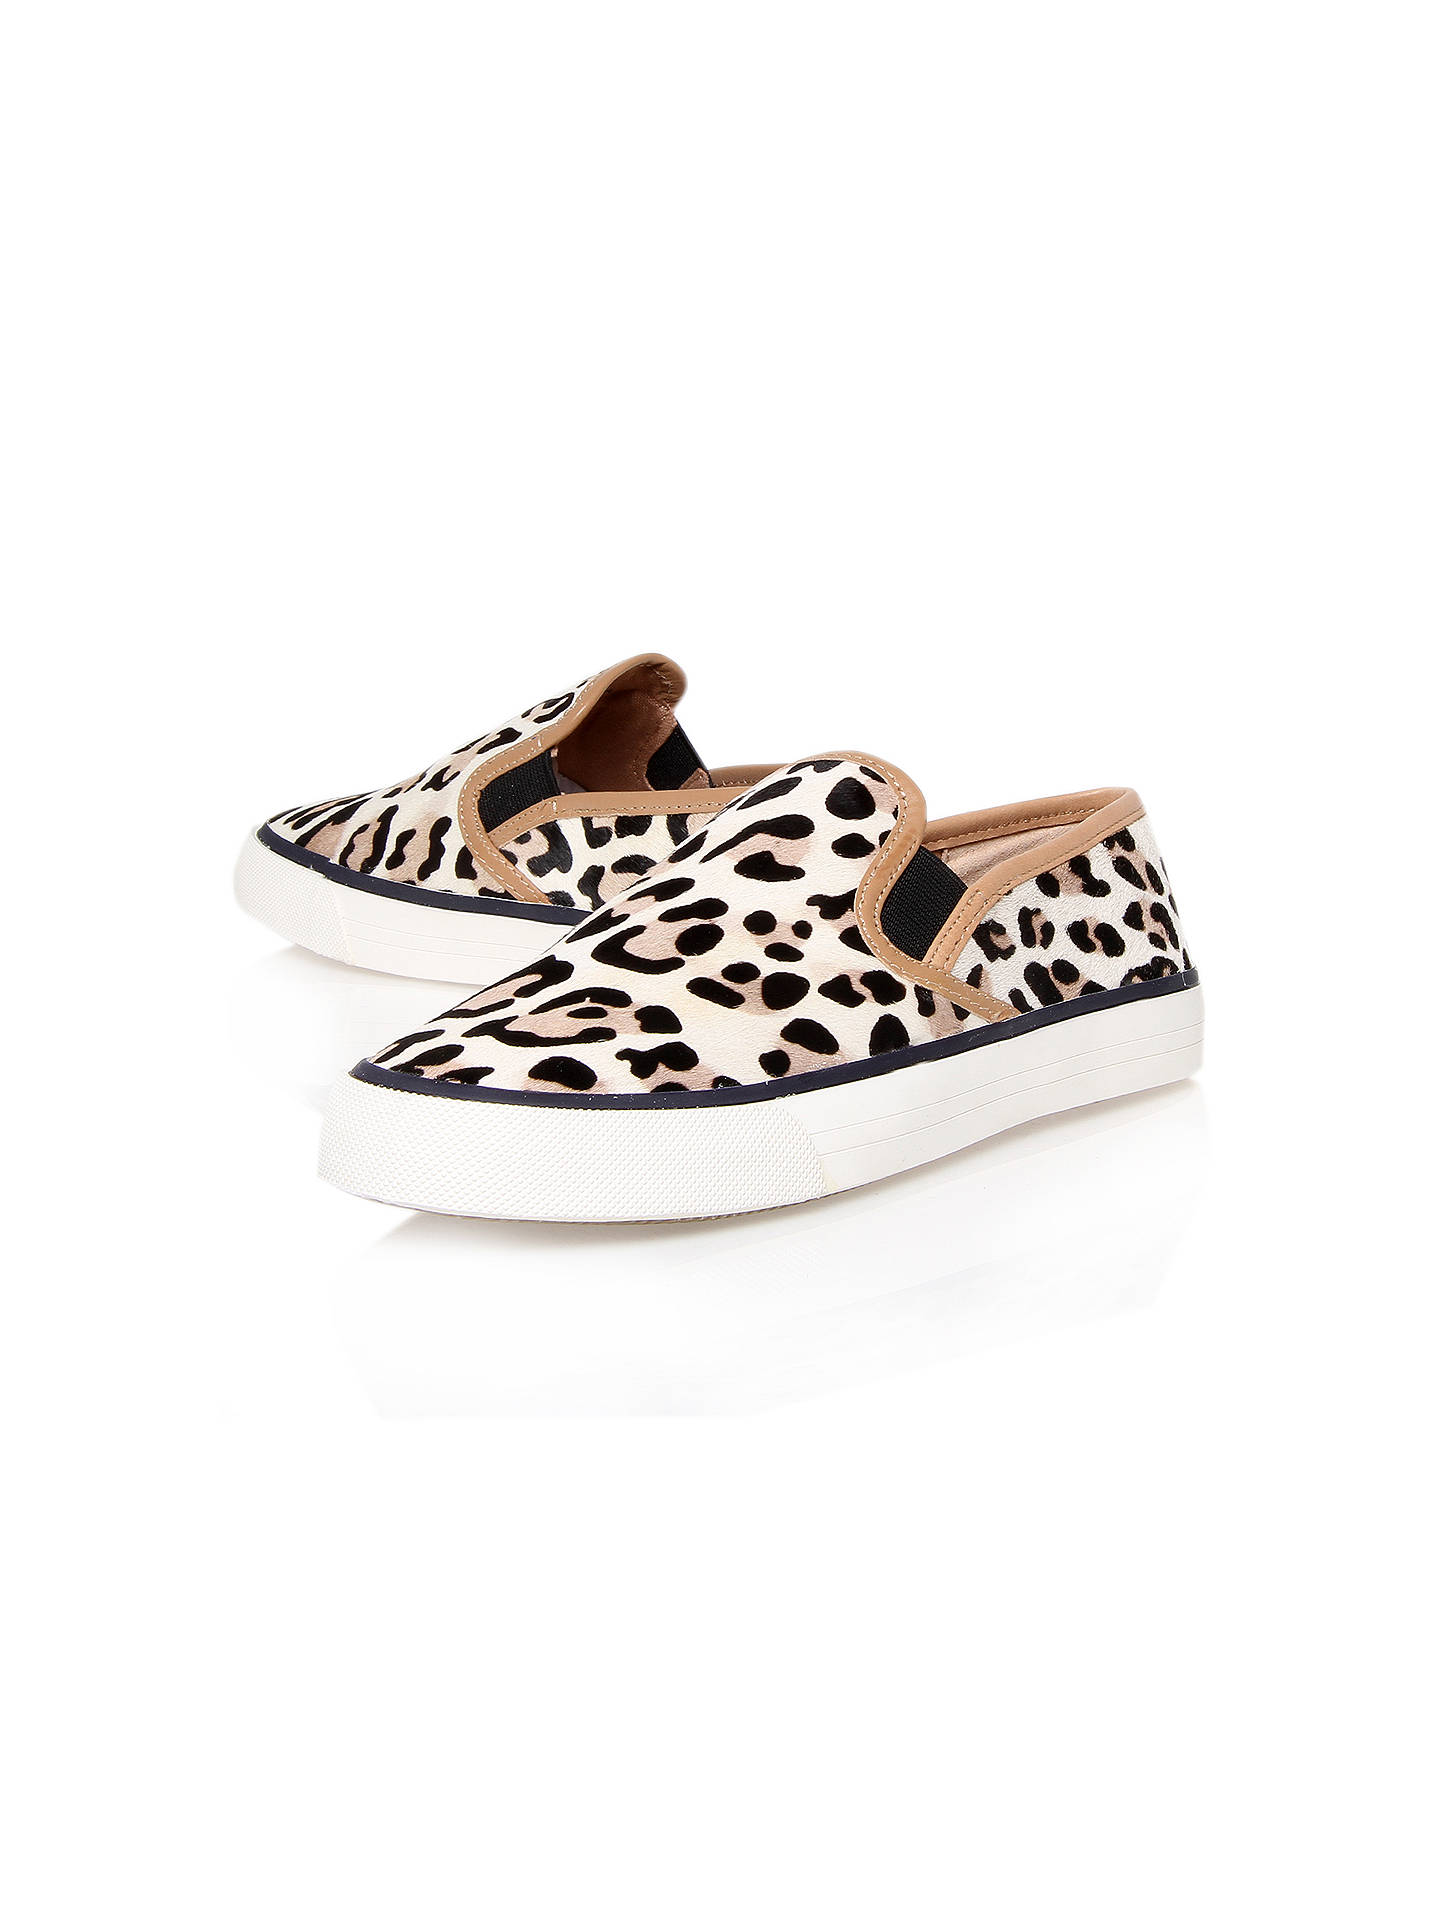 ca6c378a09bd Buy Carvela Laurel Flat Slip On Trainers, Leopard Pony, 3 Online at  johnlewis.